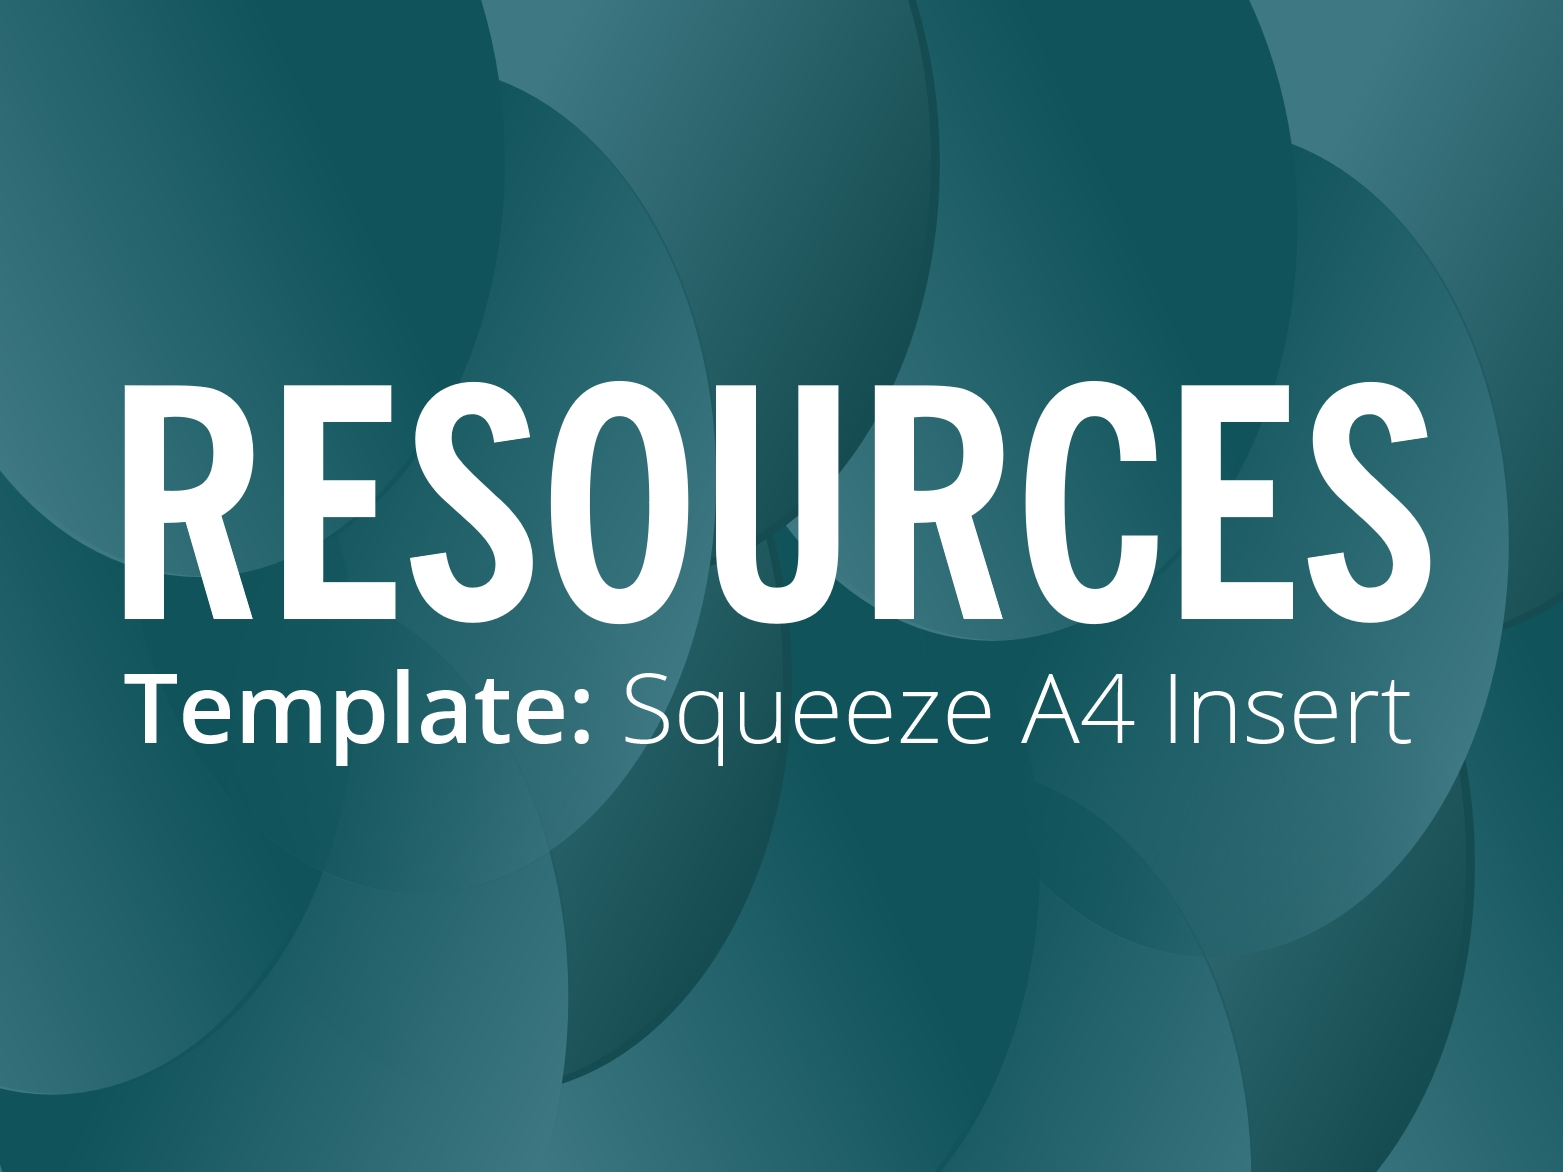 RESOURCES: Squeeze full colour A4 insert